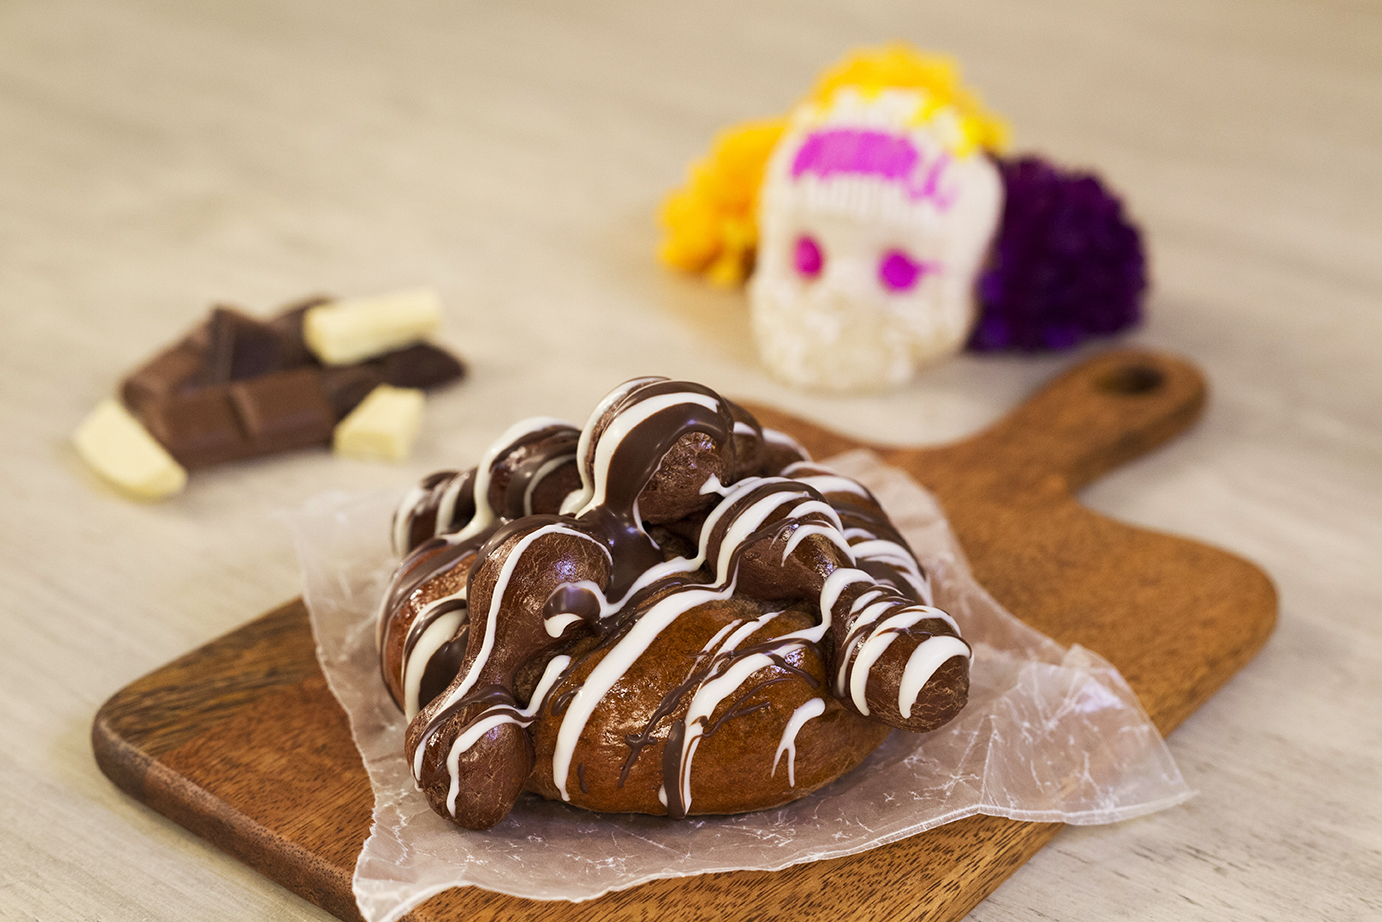 Pan de muerto 2 chocolates